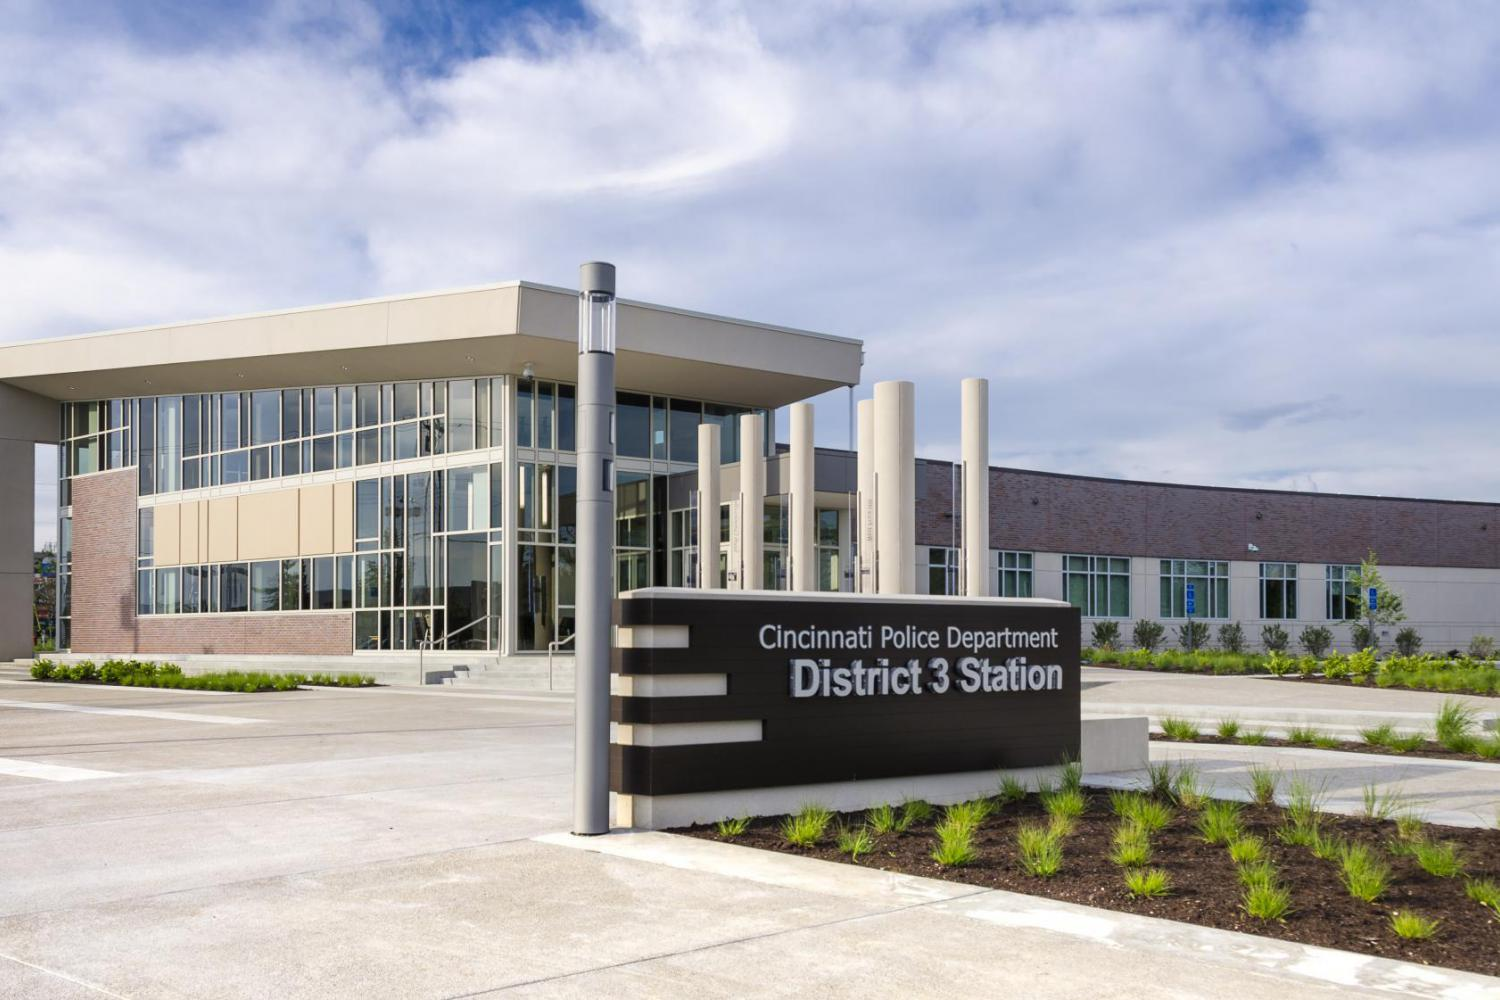 First net zero energy police station in the us wvxu the cincinnati police district 3 headquarters is the first net zero energy police station in the country and carries a leed platinum certification xflitez Image collections